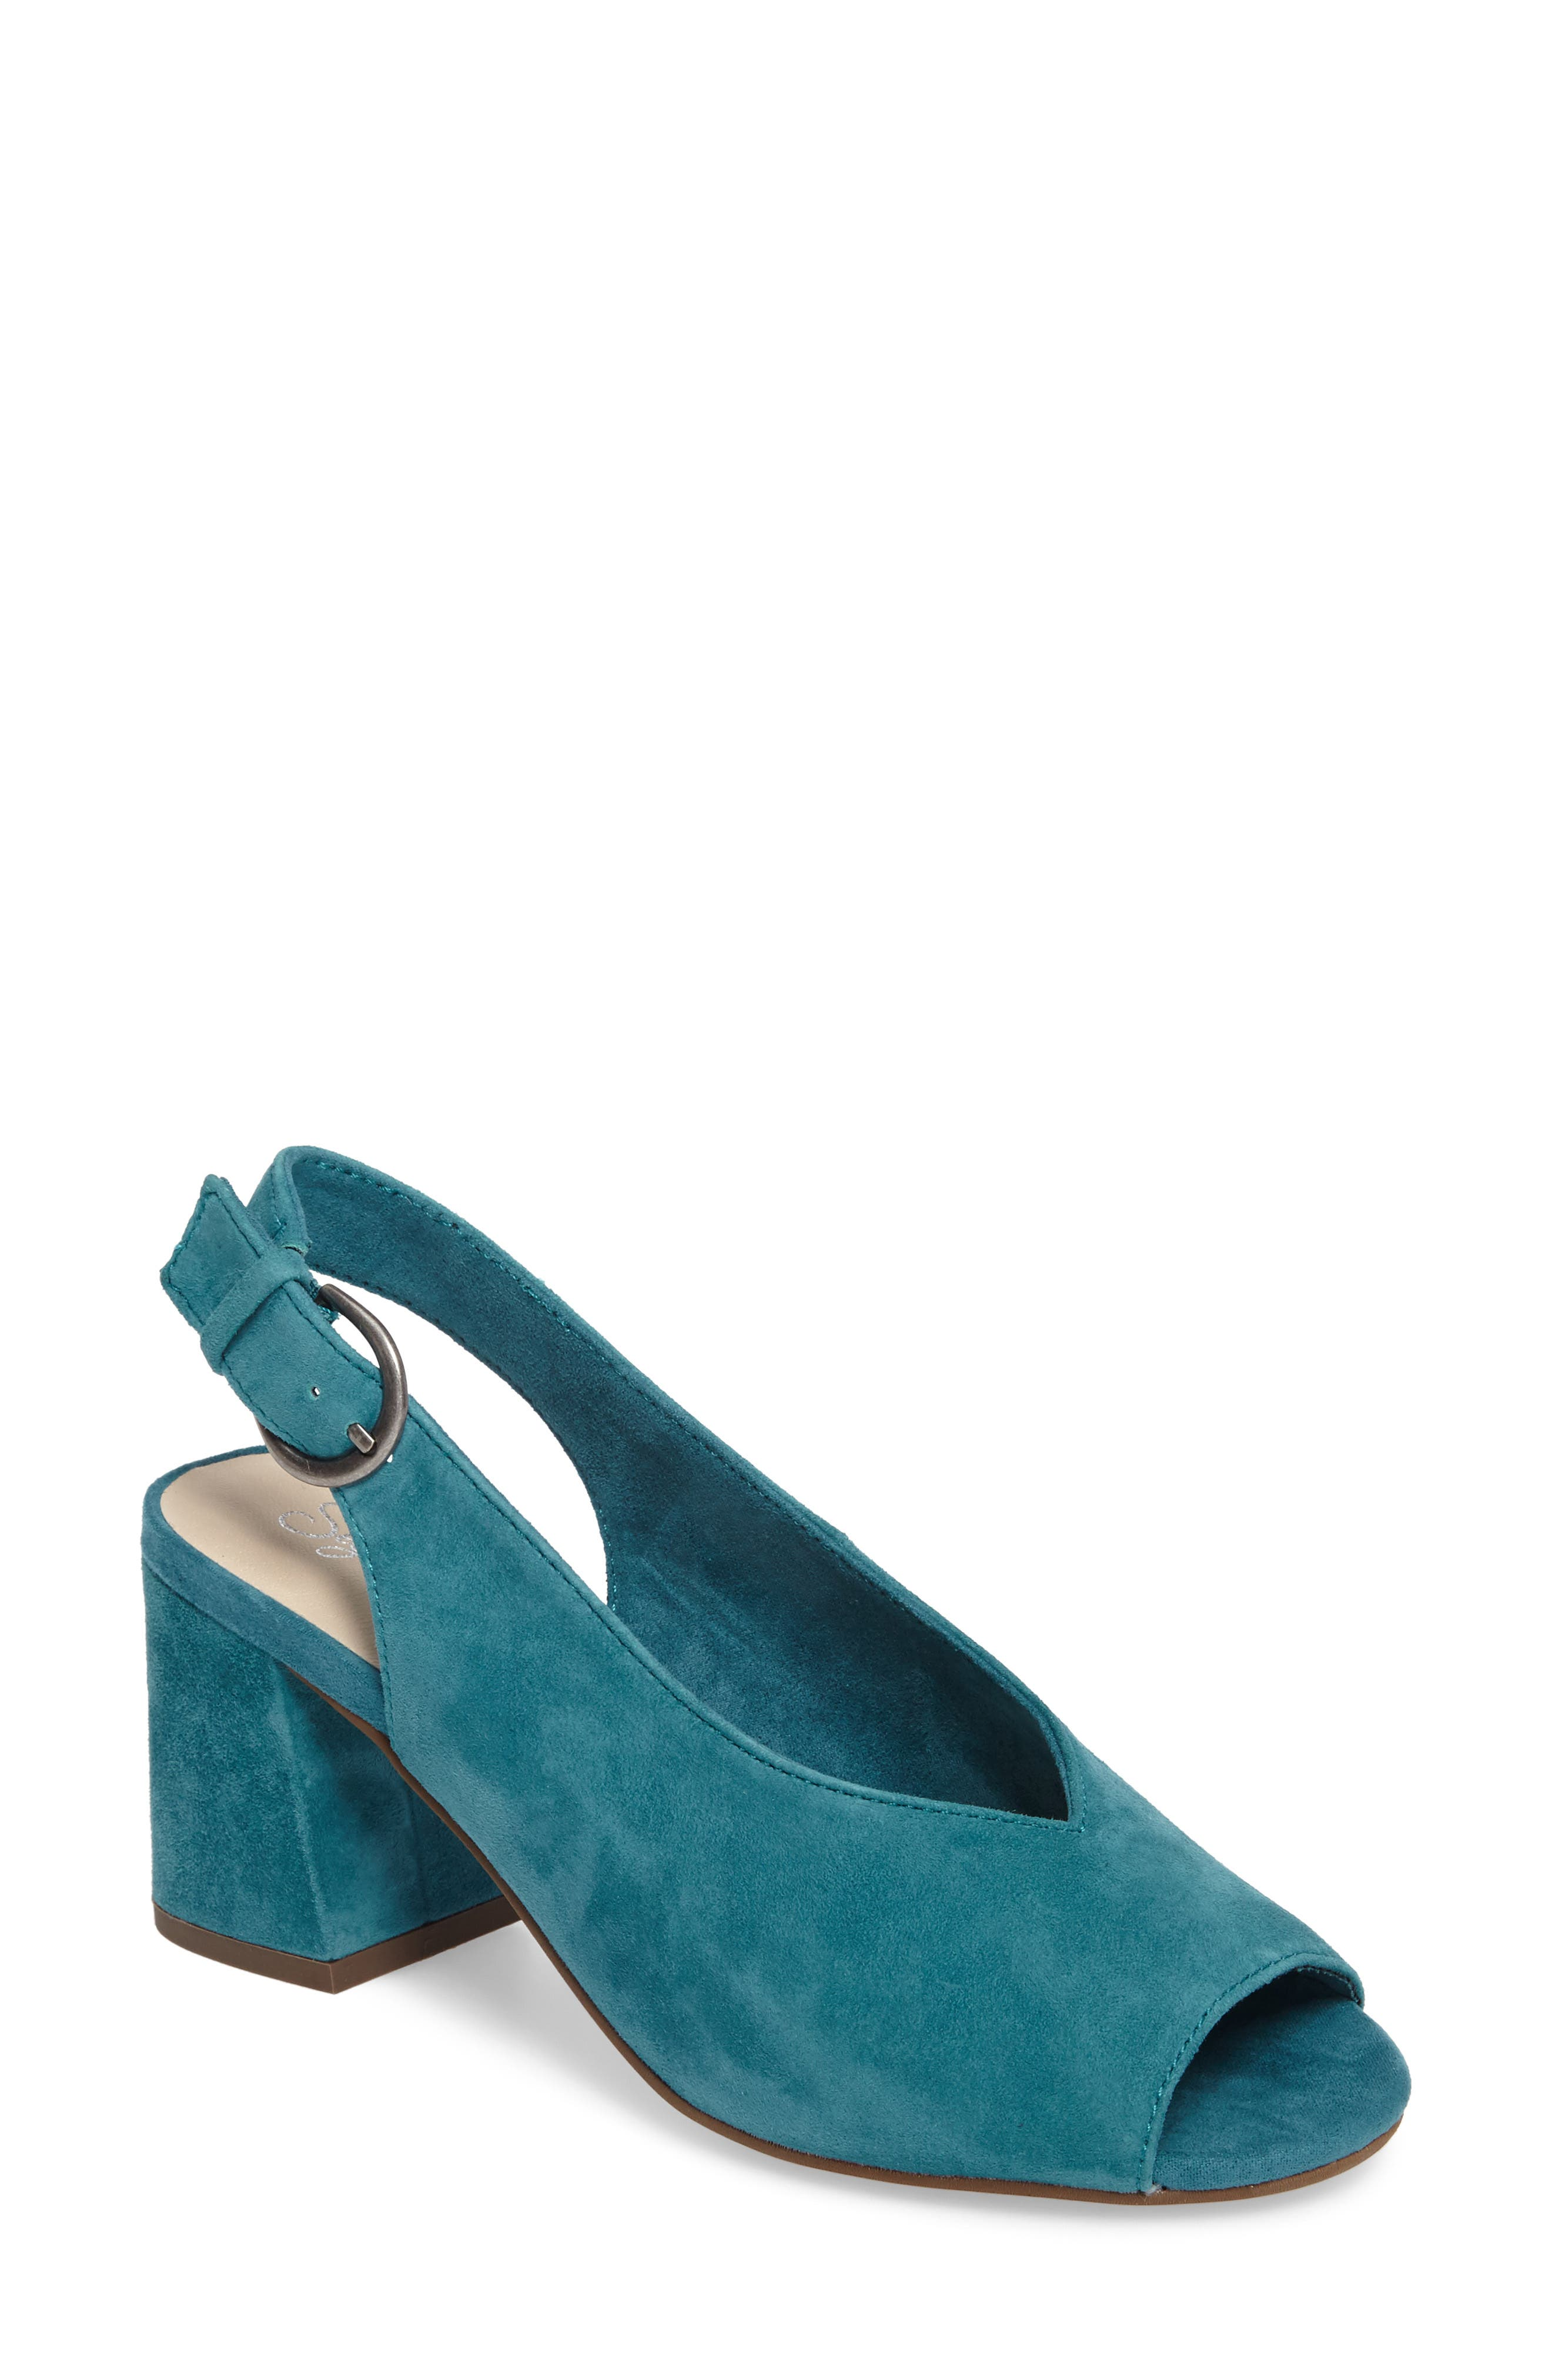 Alternate Image 1 Selected - Seychelles Playwright Slingback Sandal (Women)